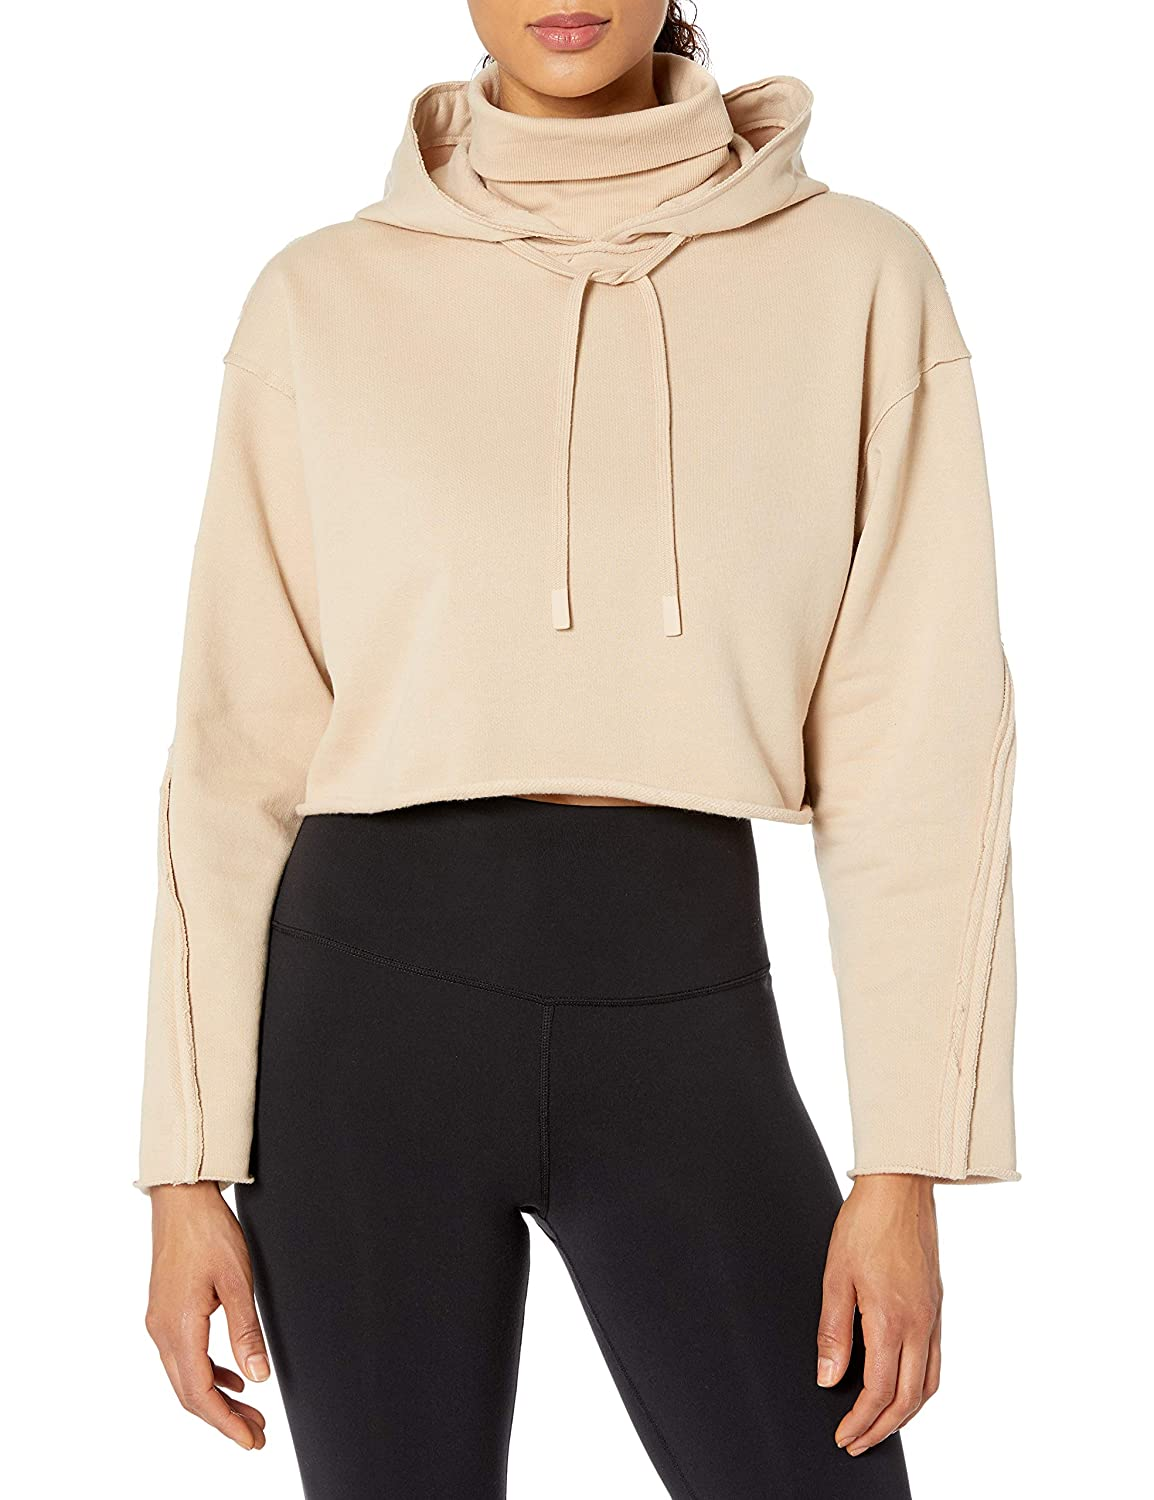 Image of Active Hoodies Alo Yoga Women's Effortless Hoodie